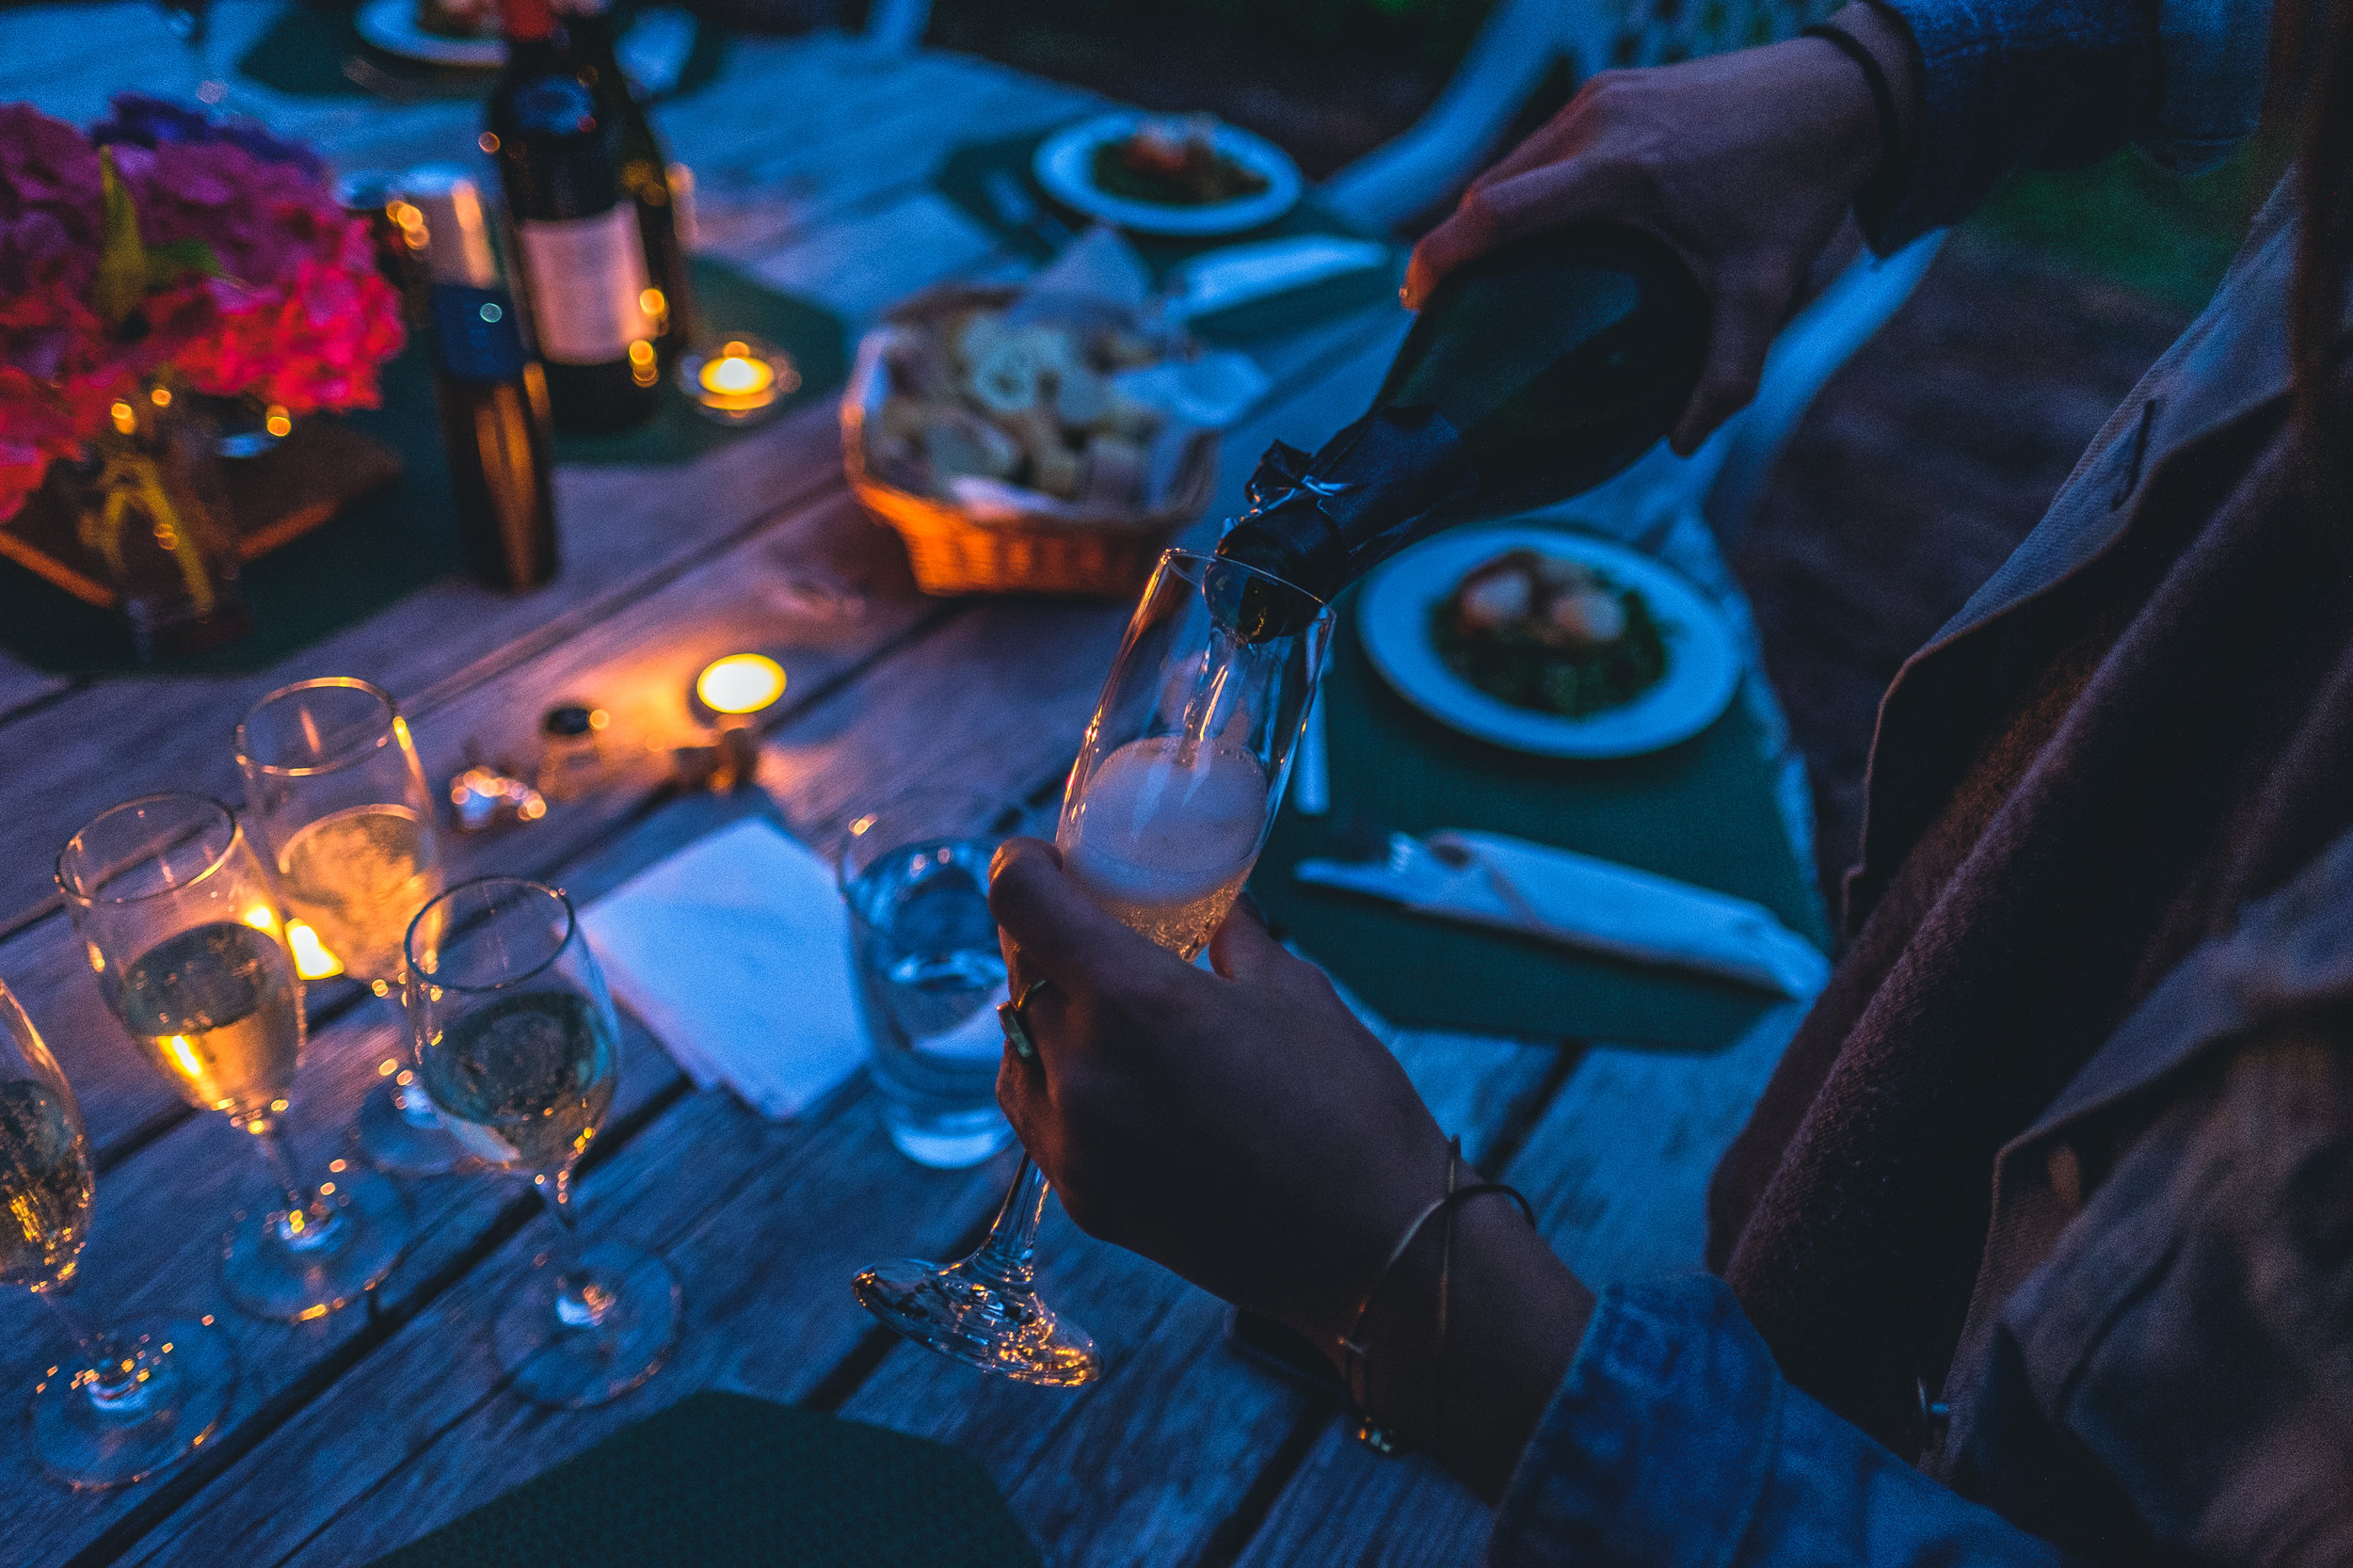 - Some Tent & Tipi providers will provide their own bars and catering services or recommendations and it's good to go with these as they'll know the ins and outs of working in this unusual environment.